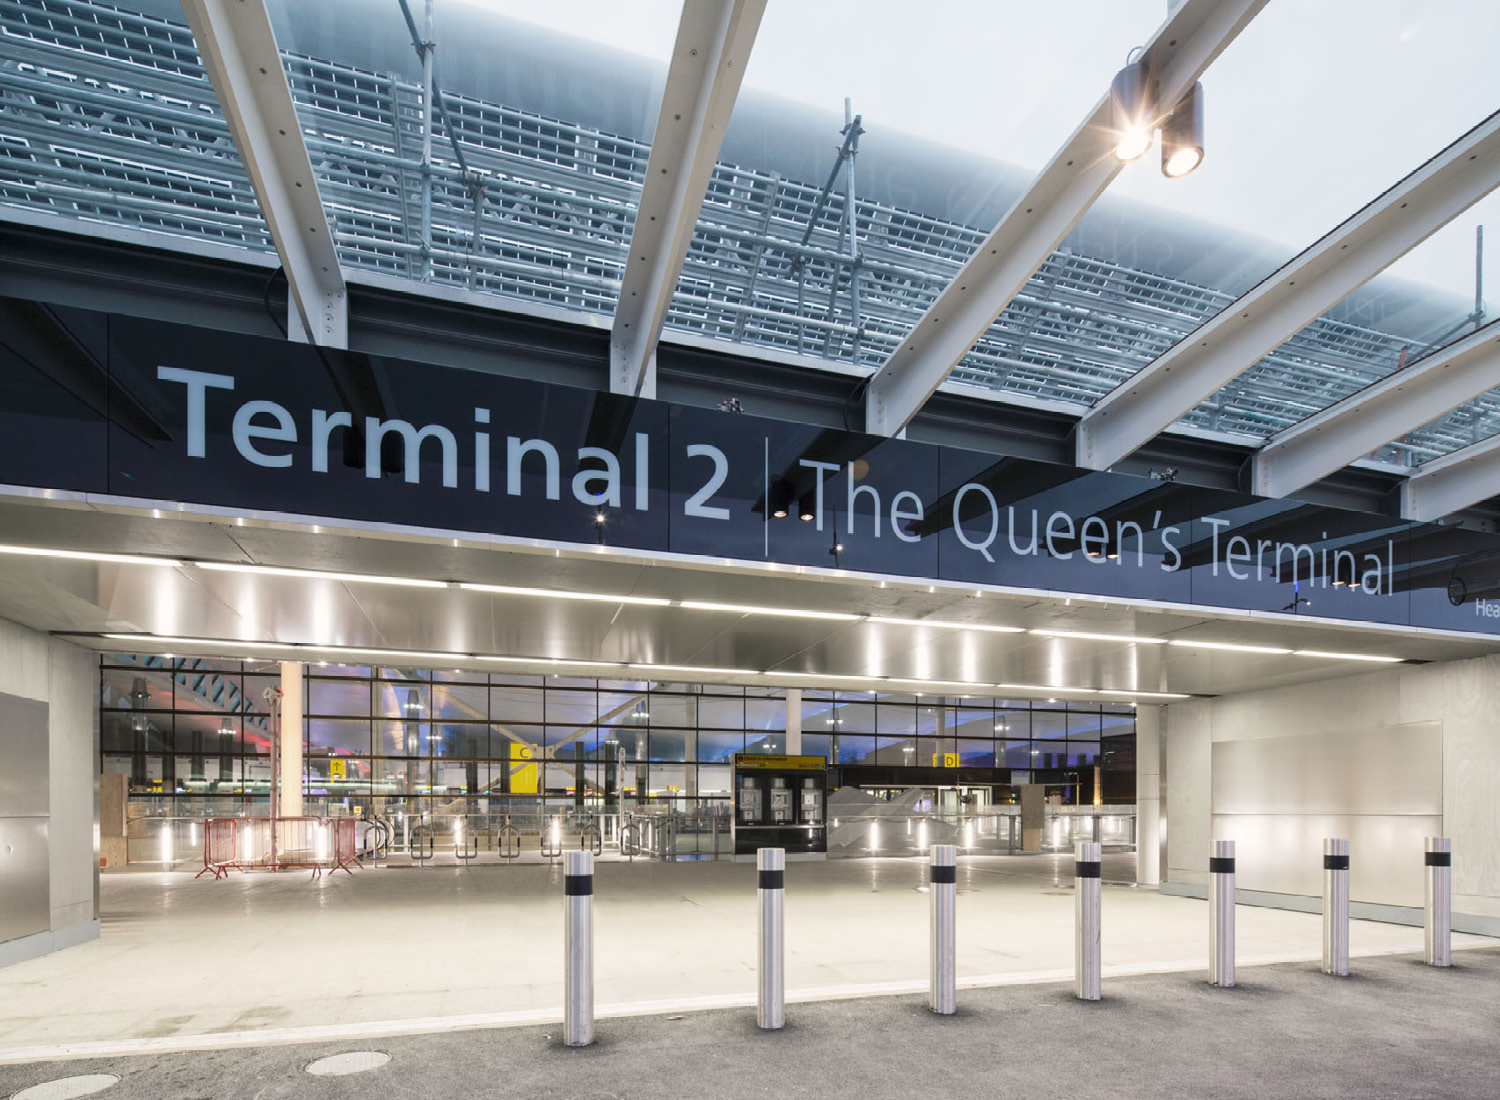 Entrance Gate from the top level of the Car Park to the Queen's Terminal